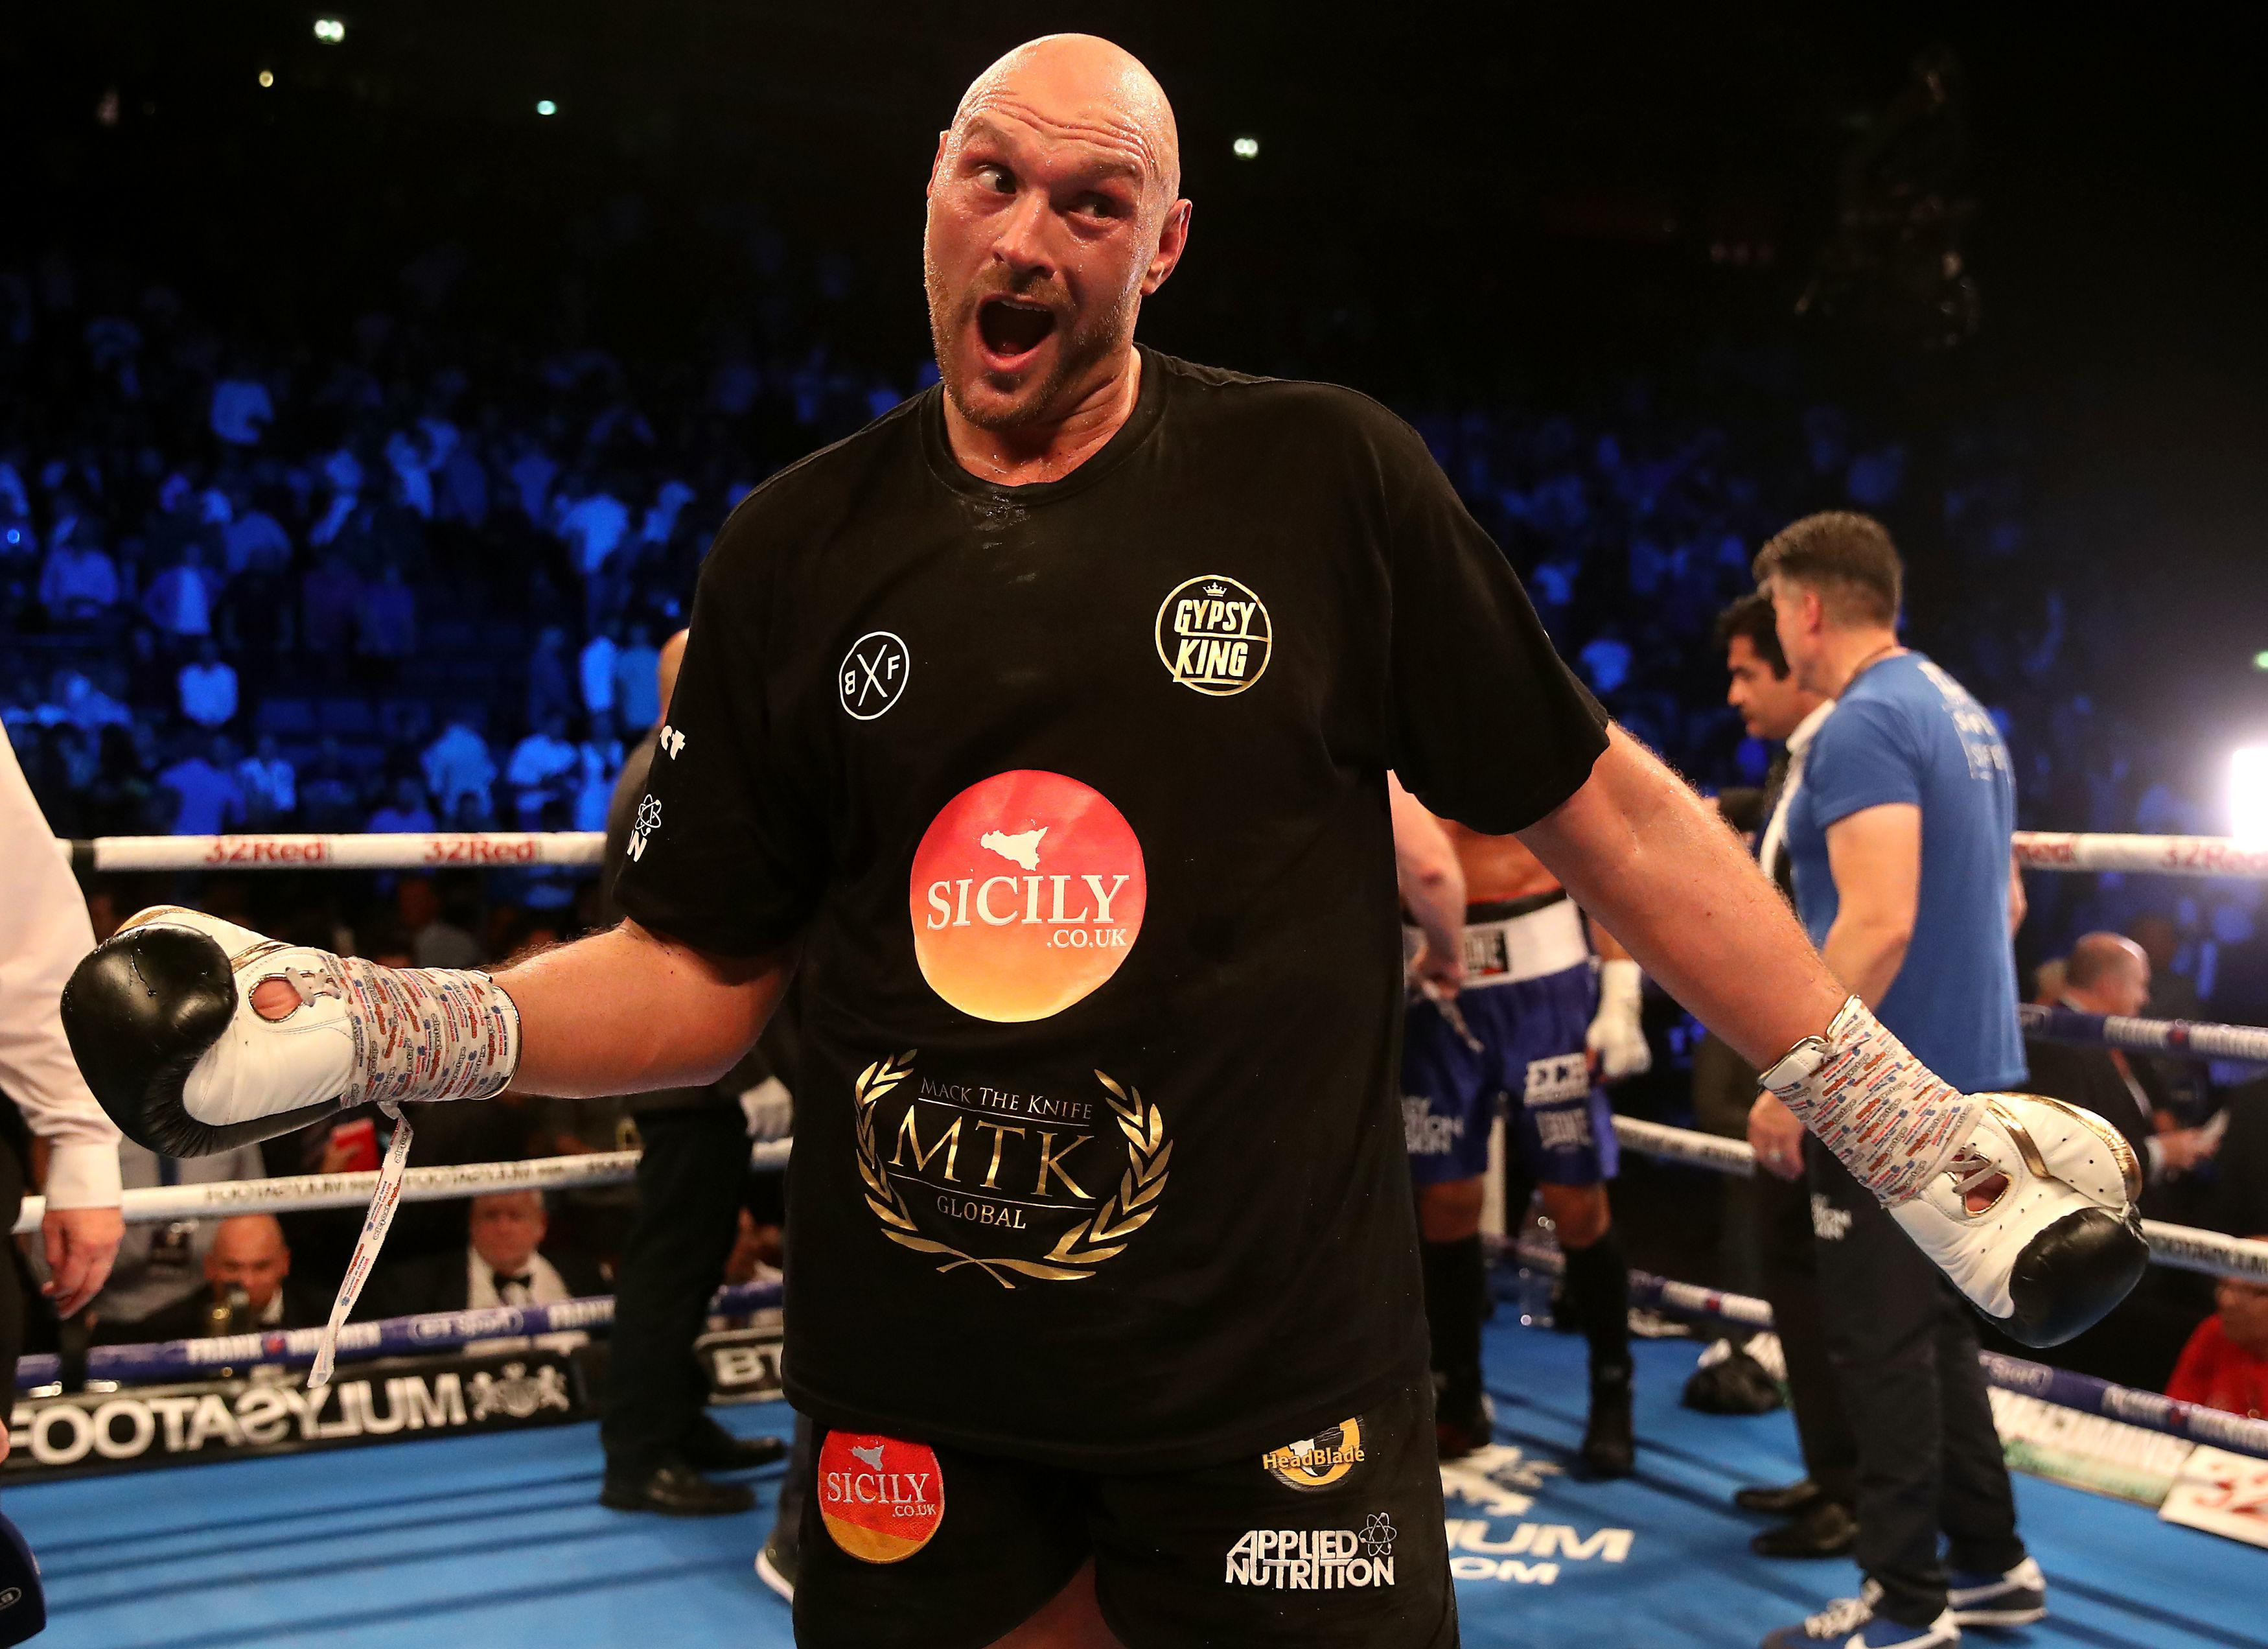 Tyson Fury might not have impressed too many people with his comeback win, but he is adamant he will be back winning world titles, and soon